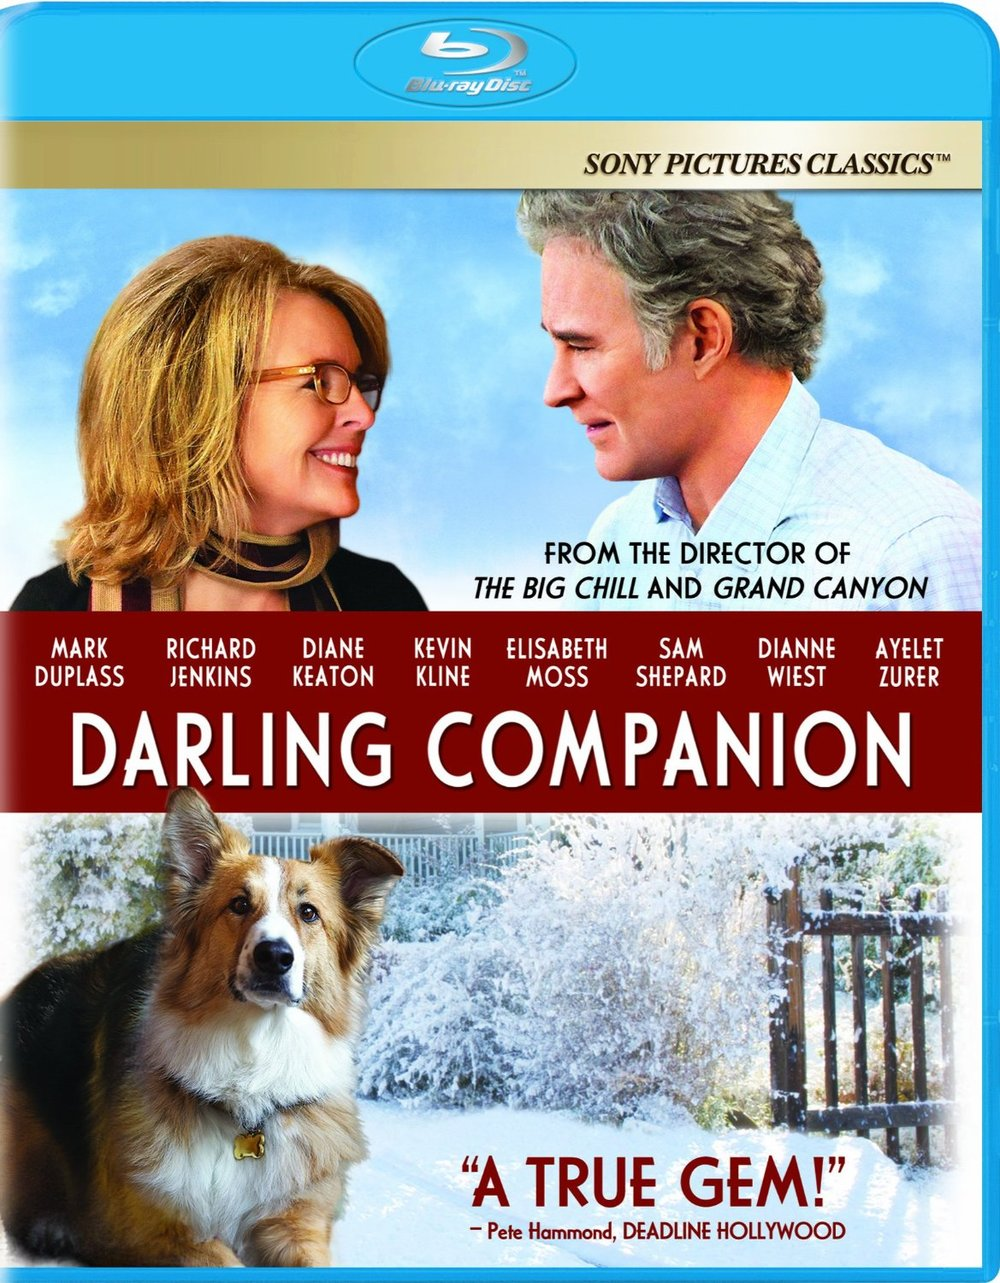 Darling Companion movie